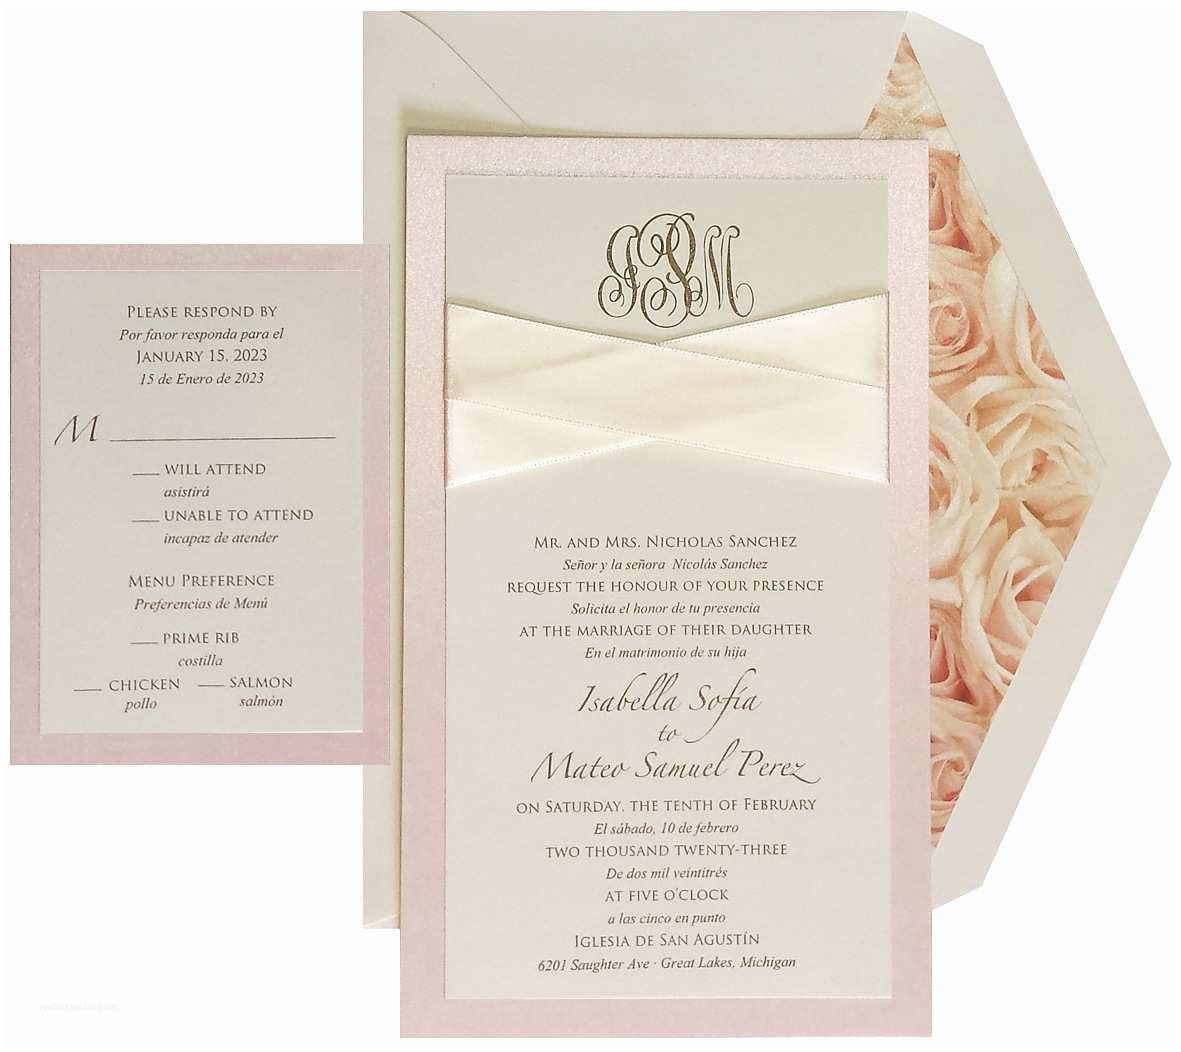 Wholesale Wedding Invitation Albums Krepe Kraft S Gallery Of wholesale Personalized